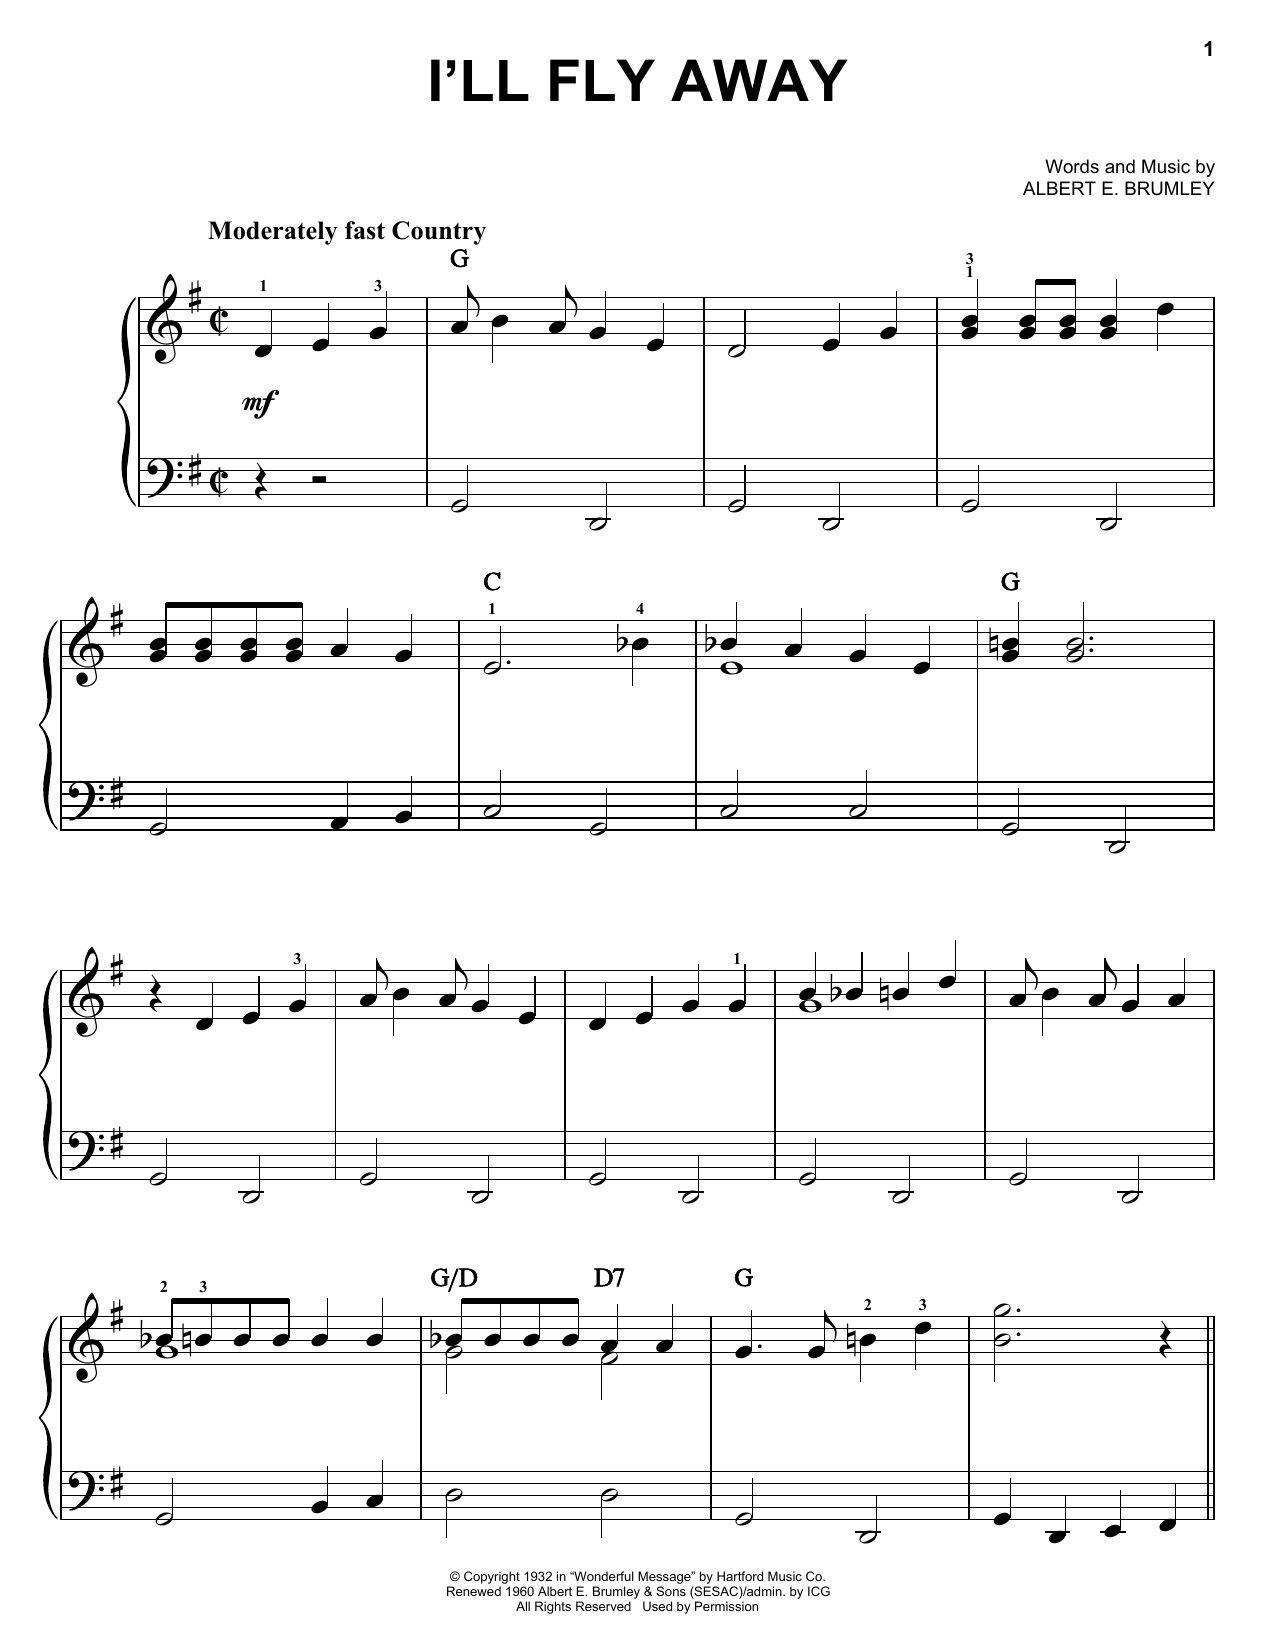 Banjo u00bb Banjo Tablature For Ill Fly Away - Music Sheets, Tablature, Chords and Lyrics